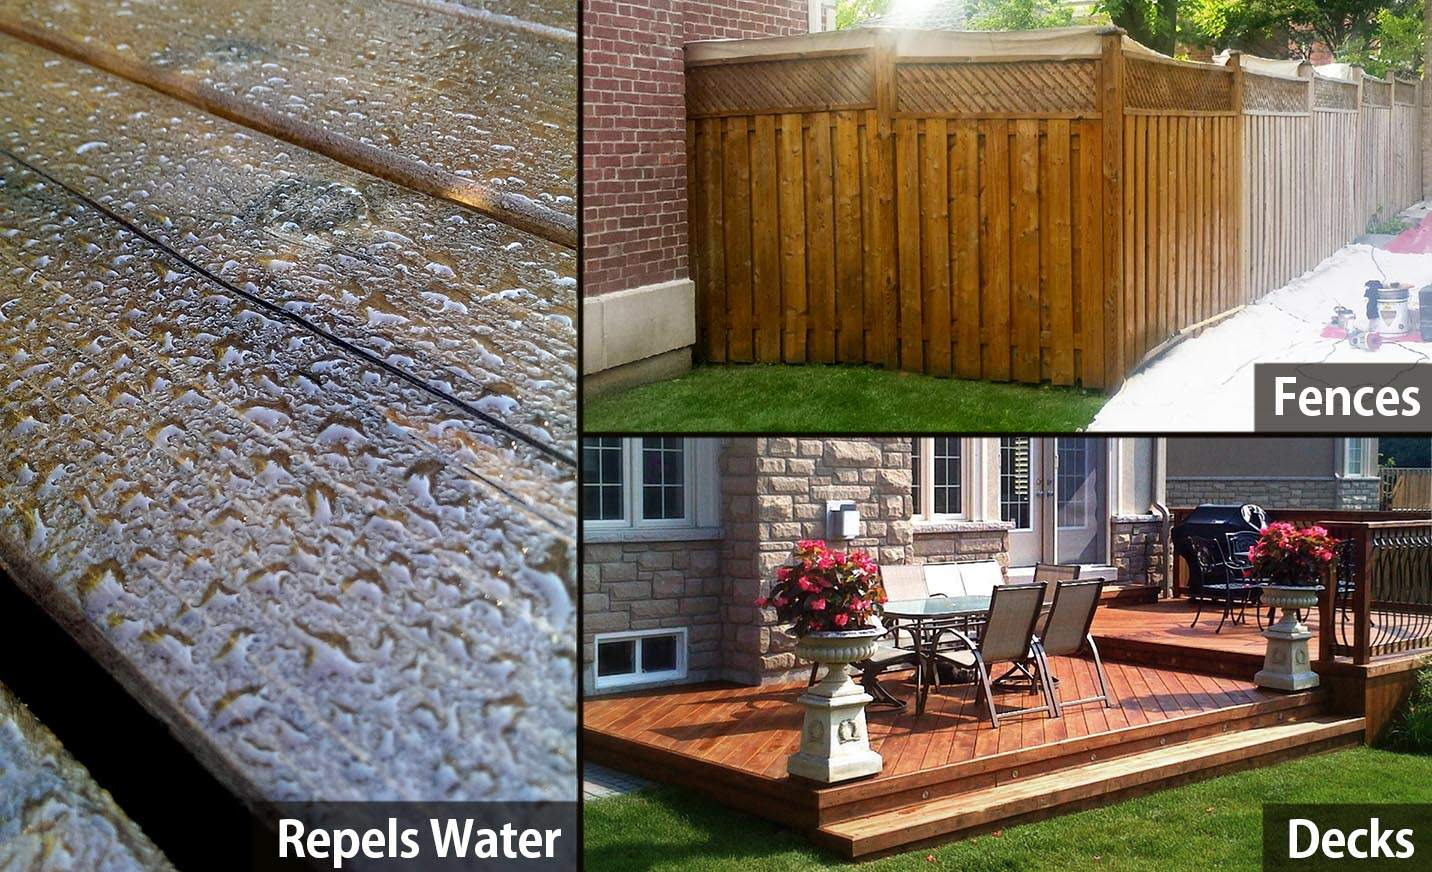 REPELS WATER FENCES DECKS wood stain